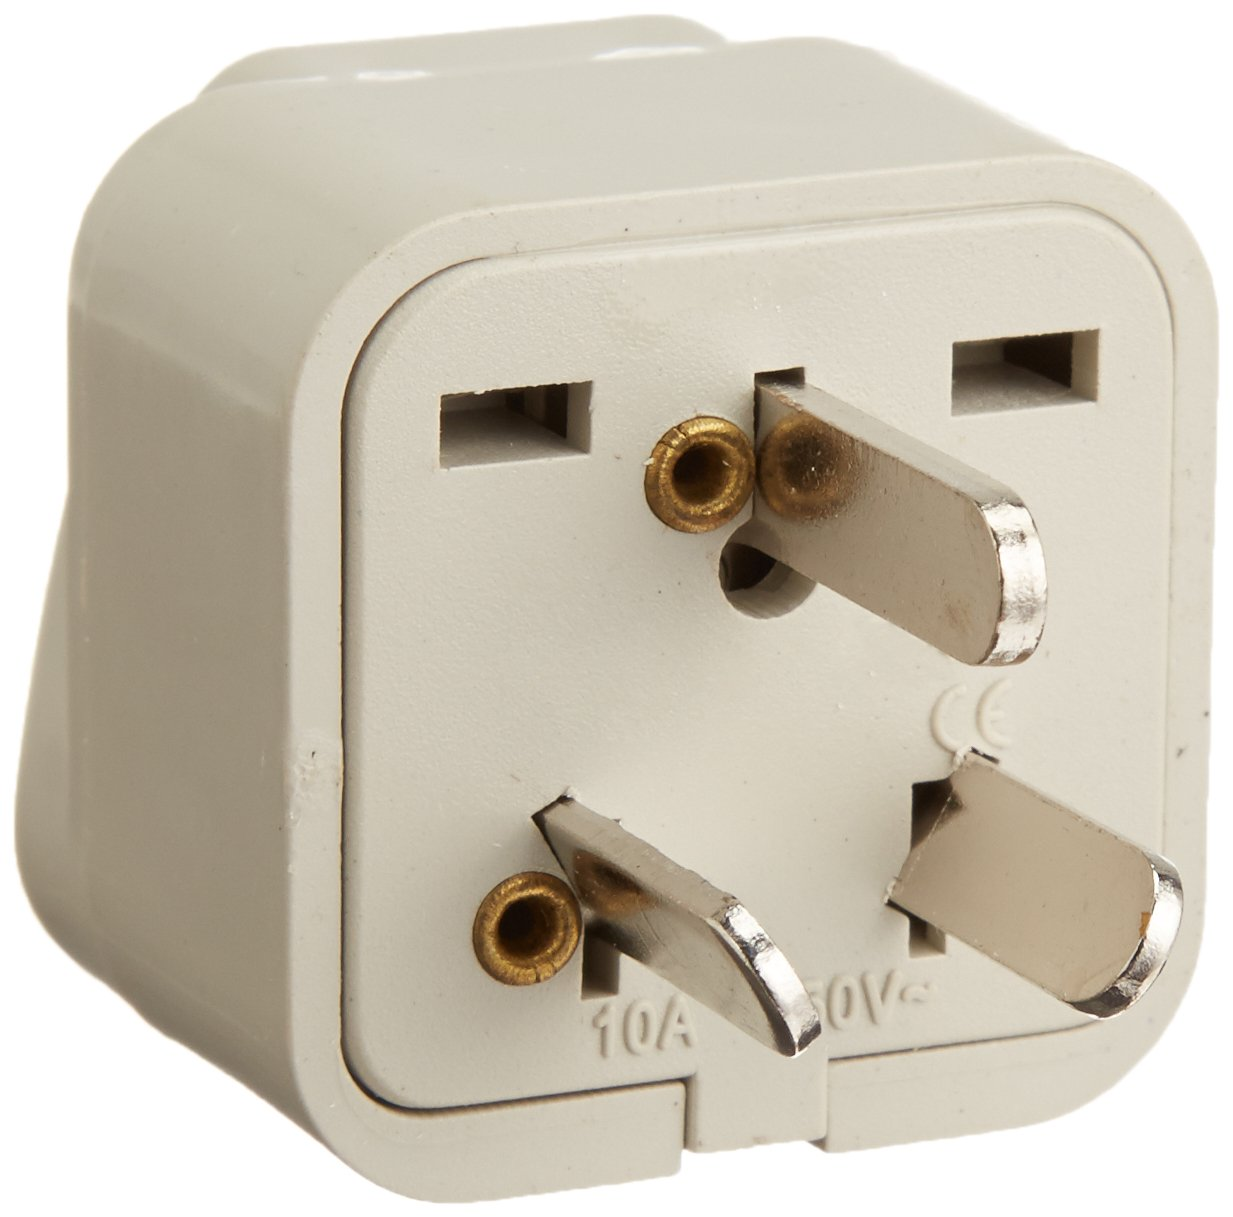 VCT VP 103- Universal plug Adapter for Australia/New Zealand/ China/  ArgentinaTravel - Electric Plugs - Amazon.com